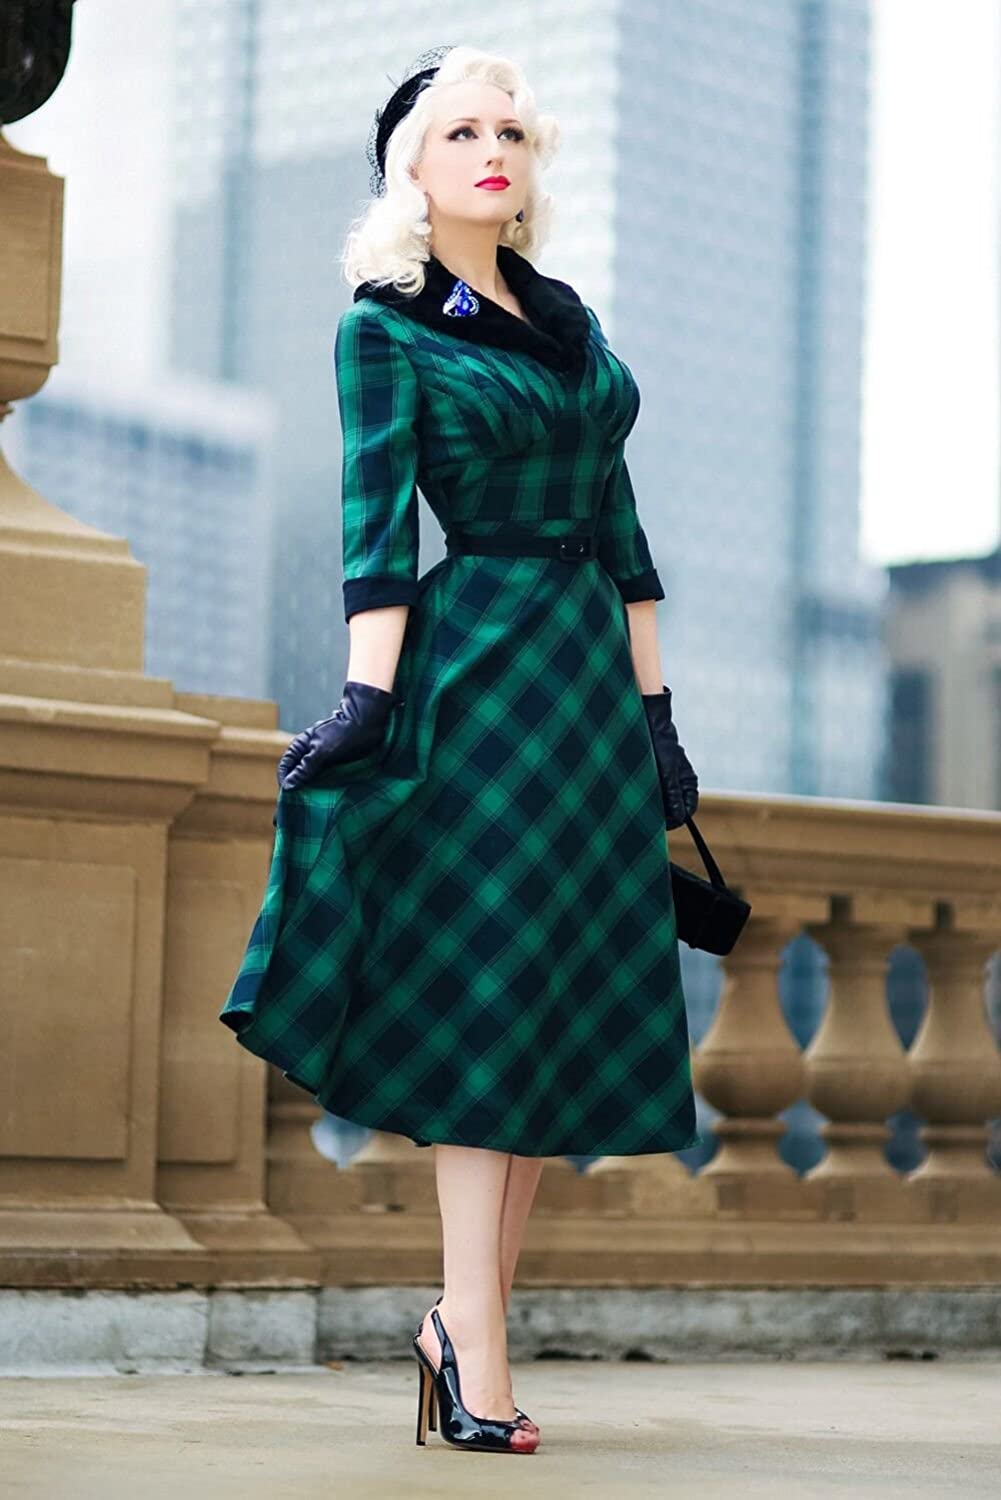 1950s Dresses, 50s Dresses | 1950s Style Dresses Voodoo Vixen Retro Vintage Lola Plaid Faux Fur Collar 3/4 Sleeve Swing Dress $81.95 AT vintagedancer.com